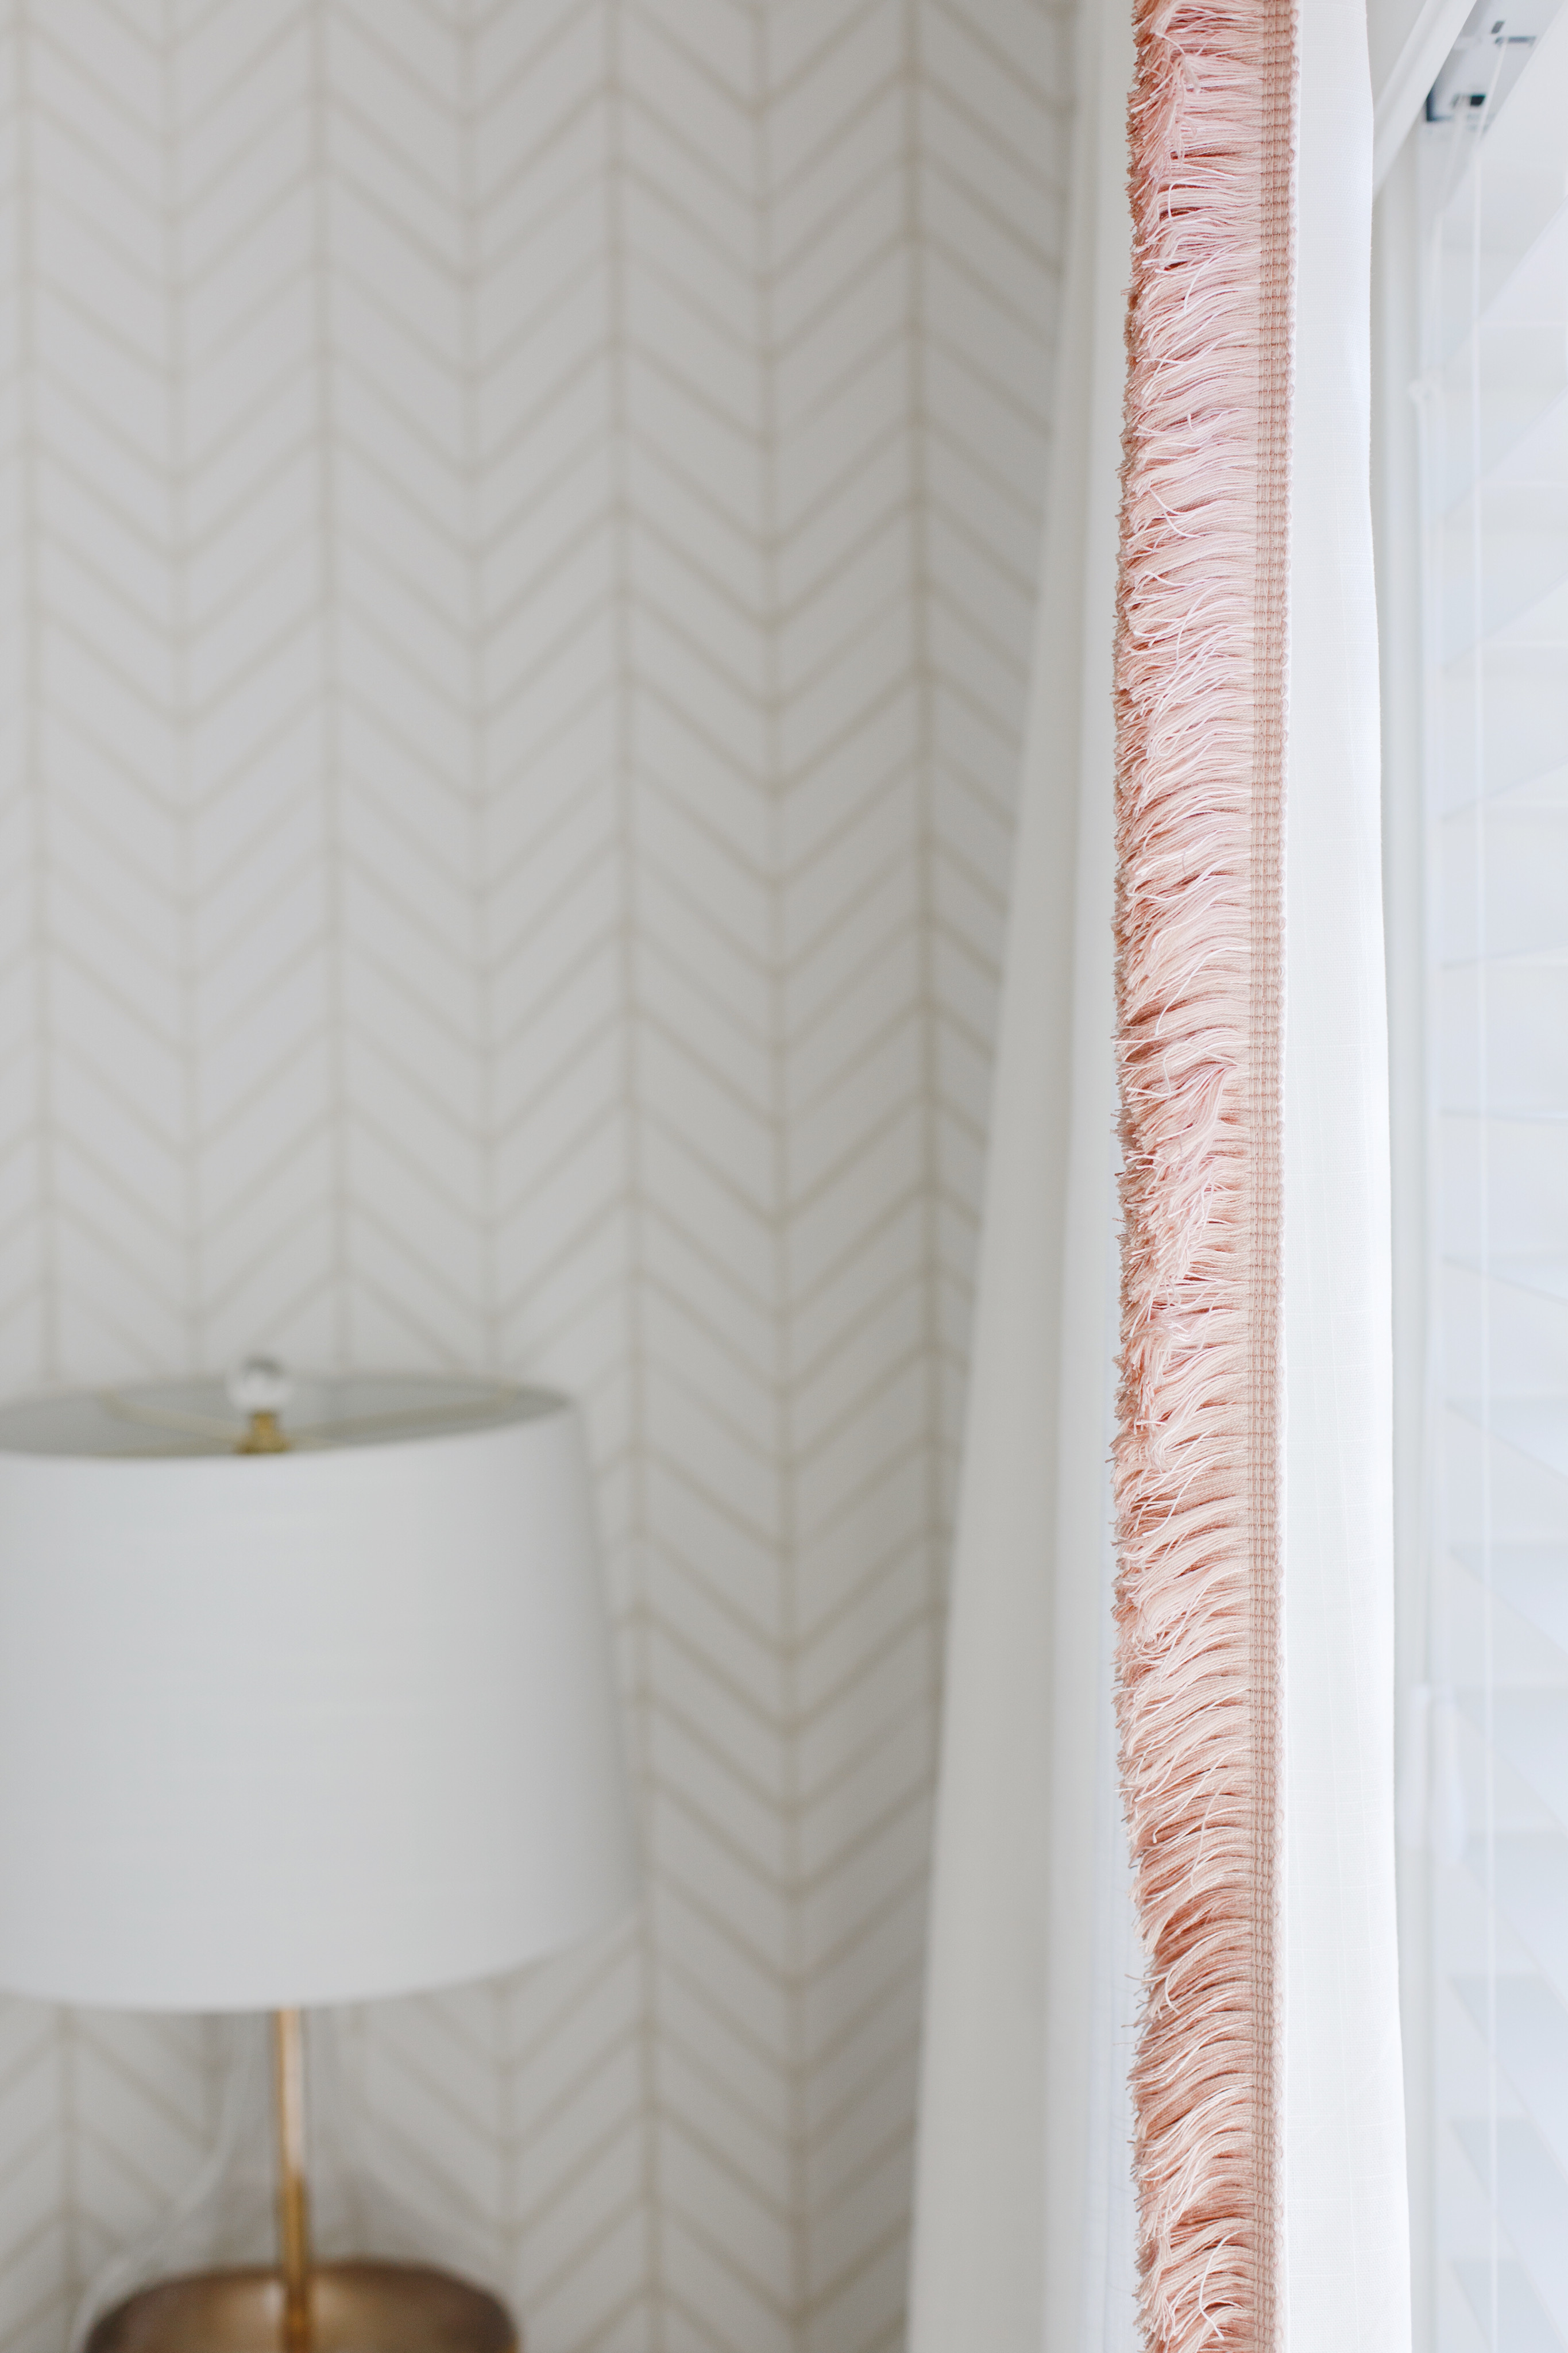 My mom sewed this adorable pink fringe on a set of IKEA curtains